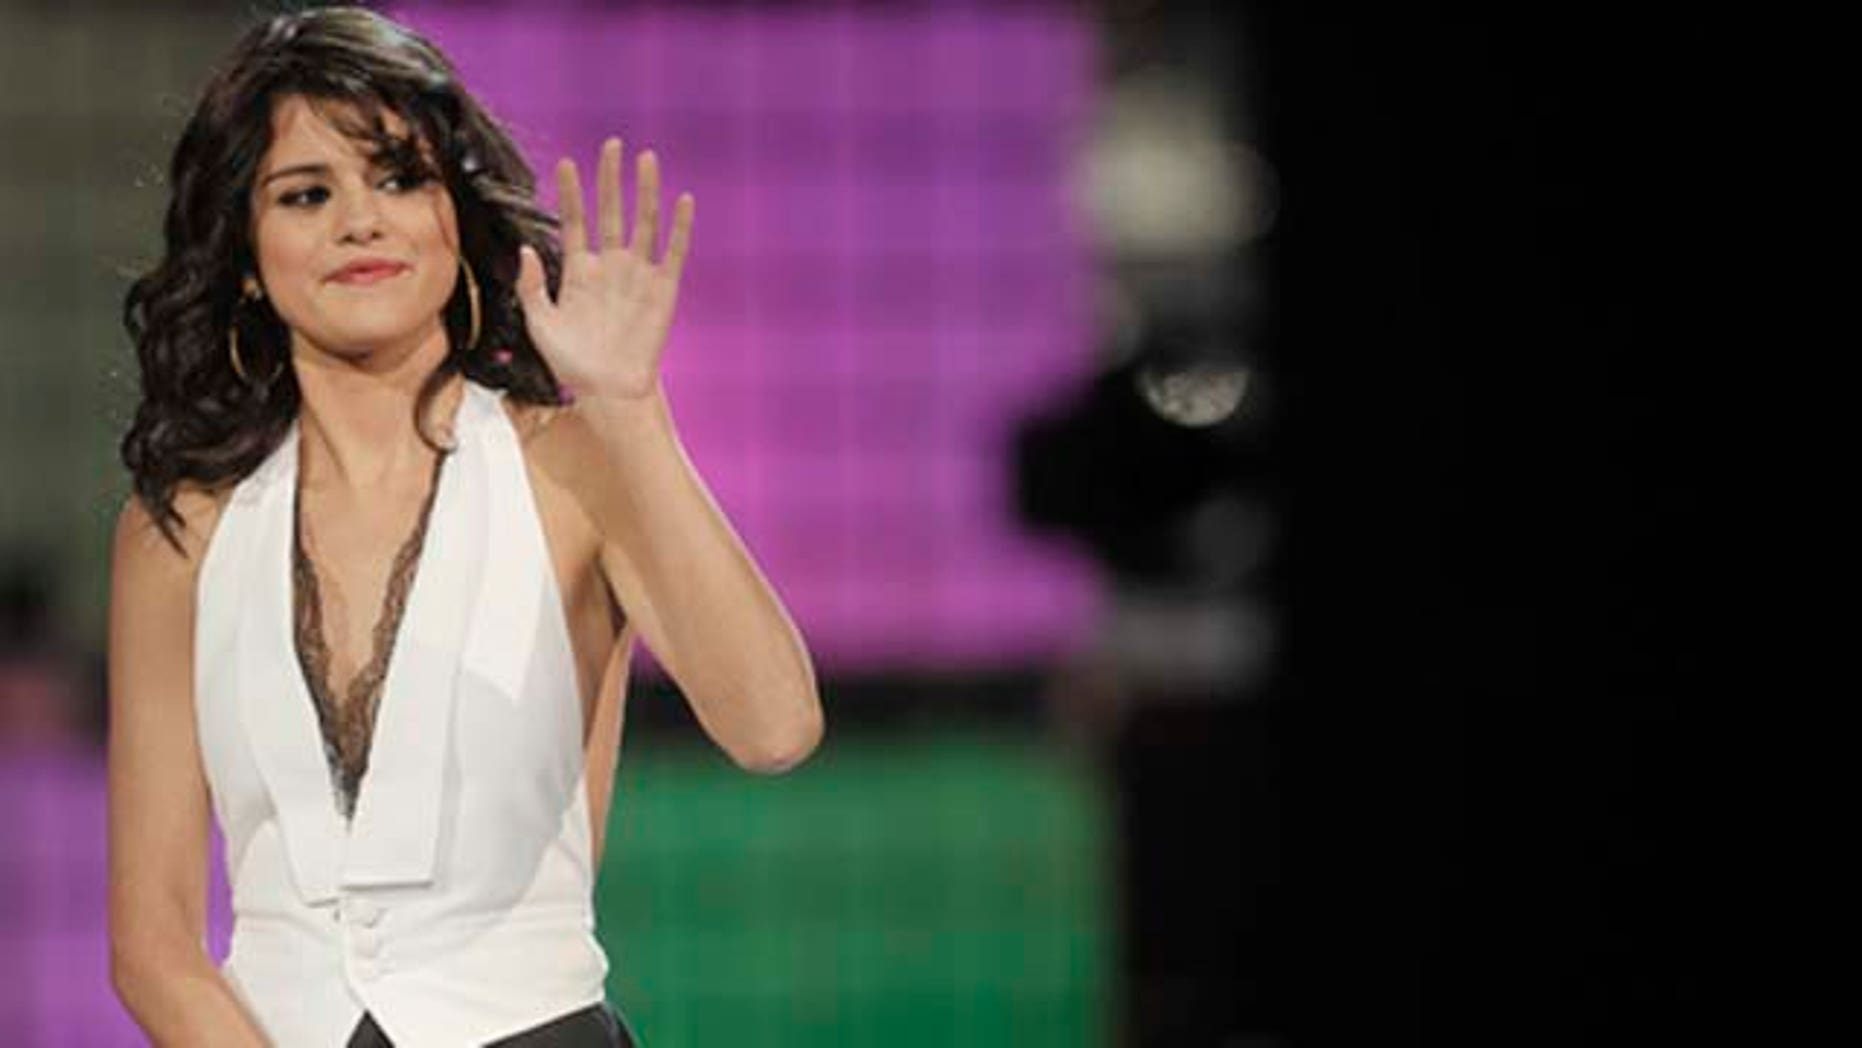 June 19, 2011: Selena Gómez on stage at the 22nd Annual Much Music Video Awards at the Much Music HQ  in Toronto, Canada.